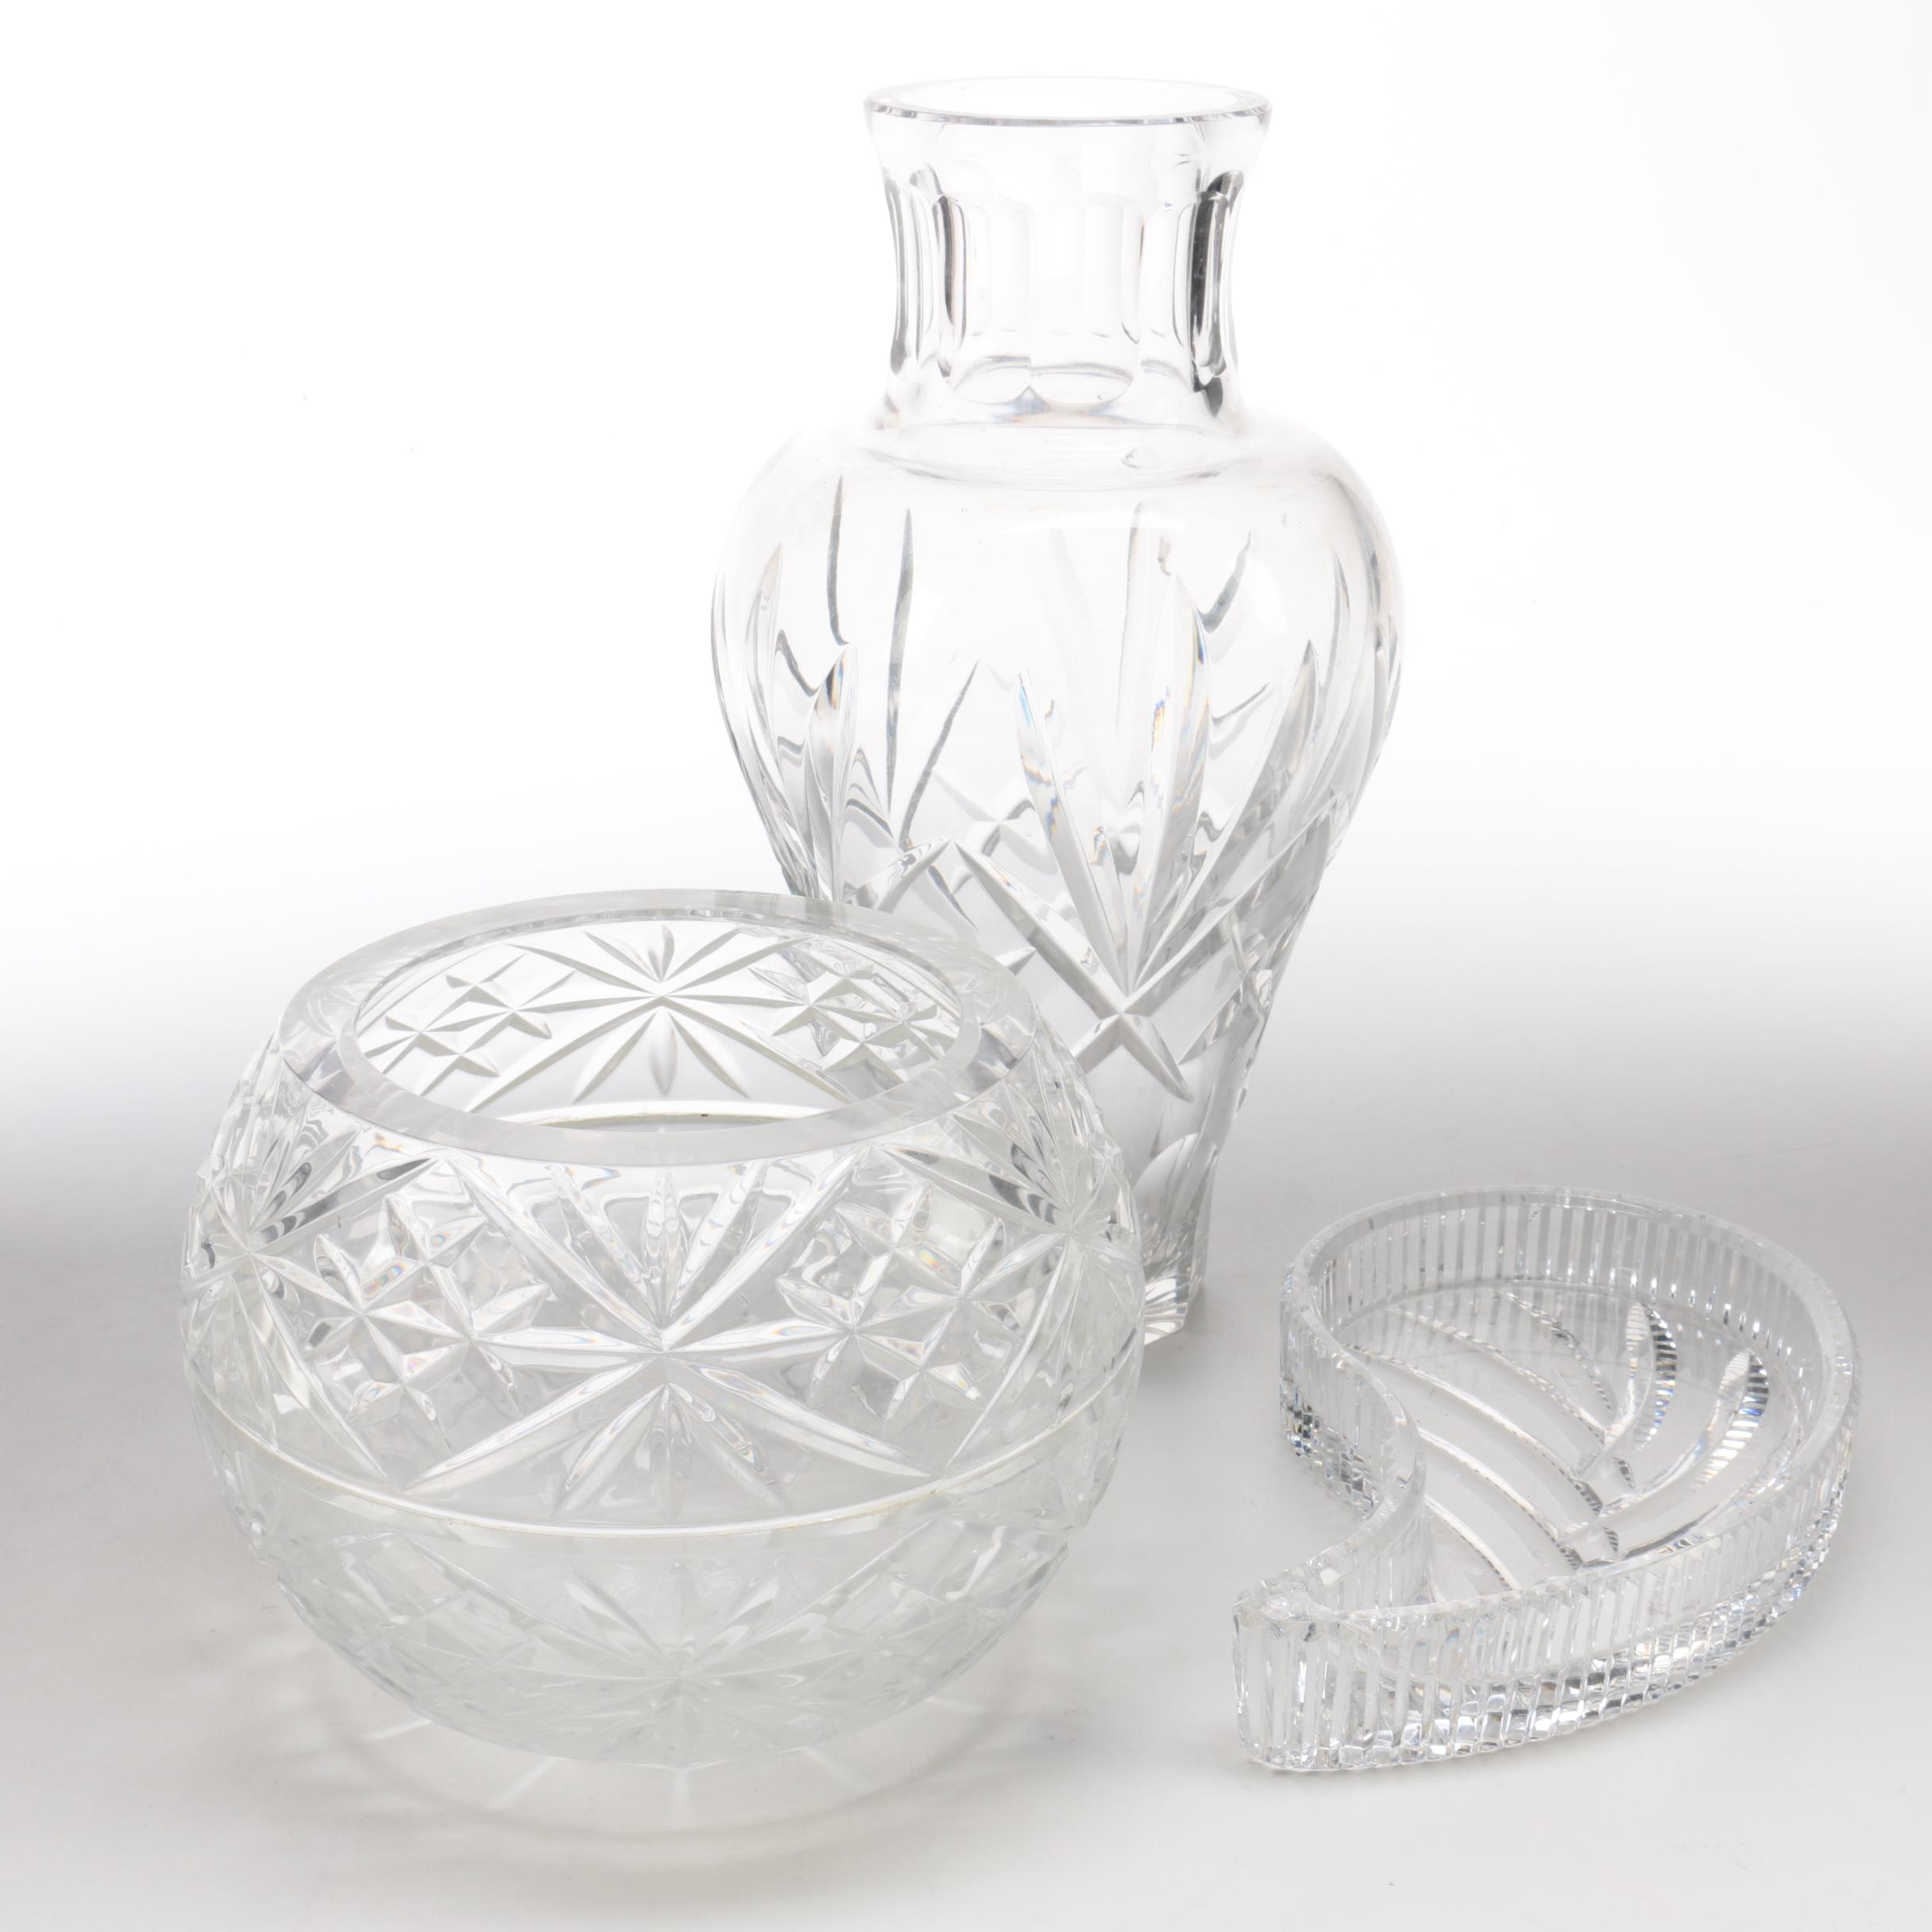 Selection of Crystal Vases and a Tray